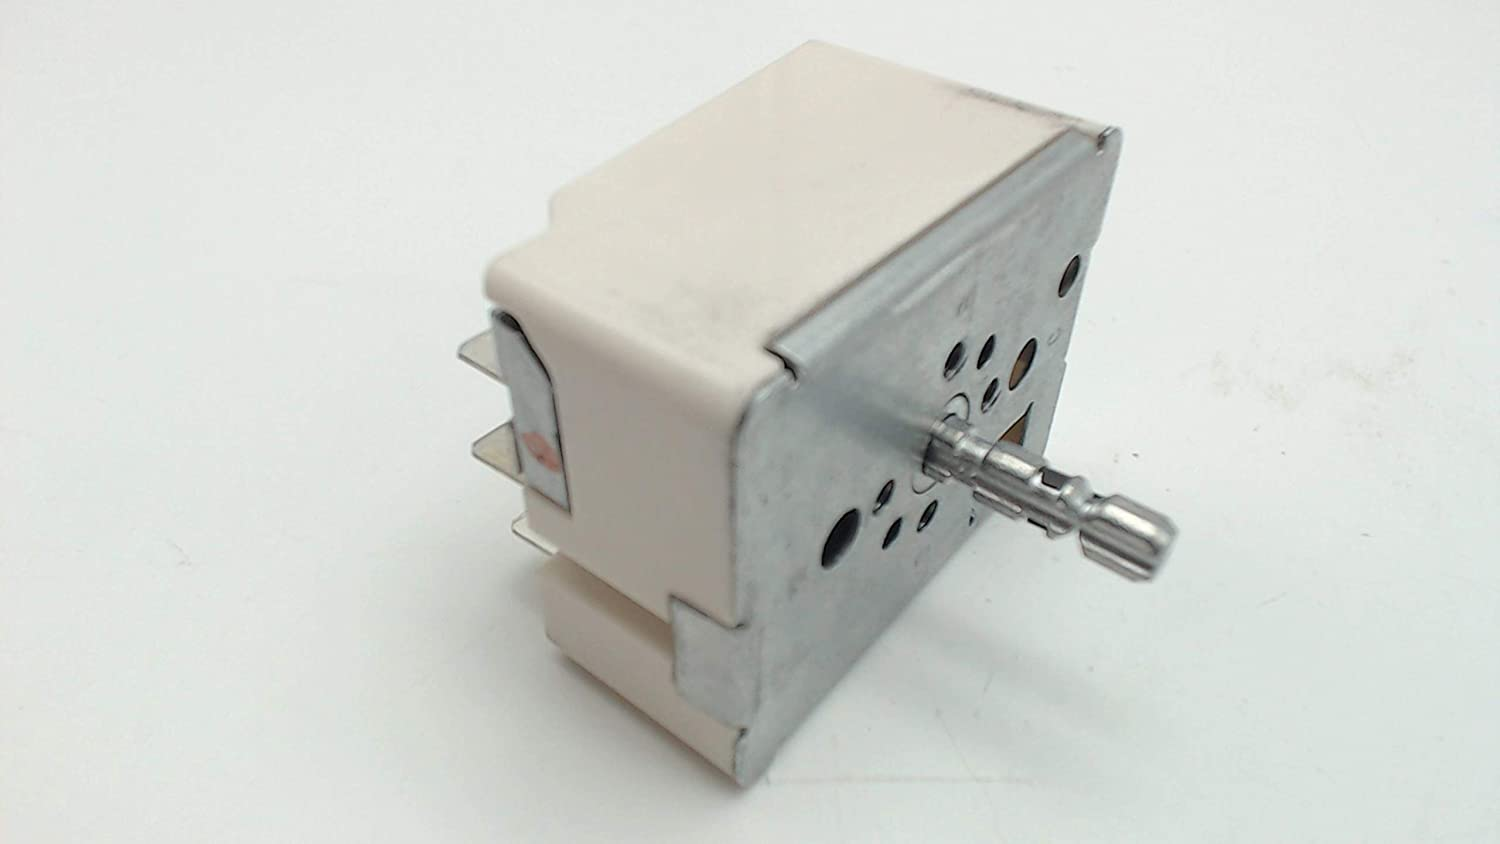 3148951 Infinte Switch Compatible With Whirlpool Stove Oven Ranges